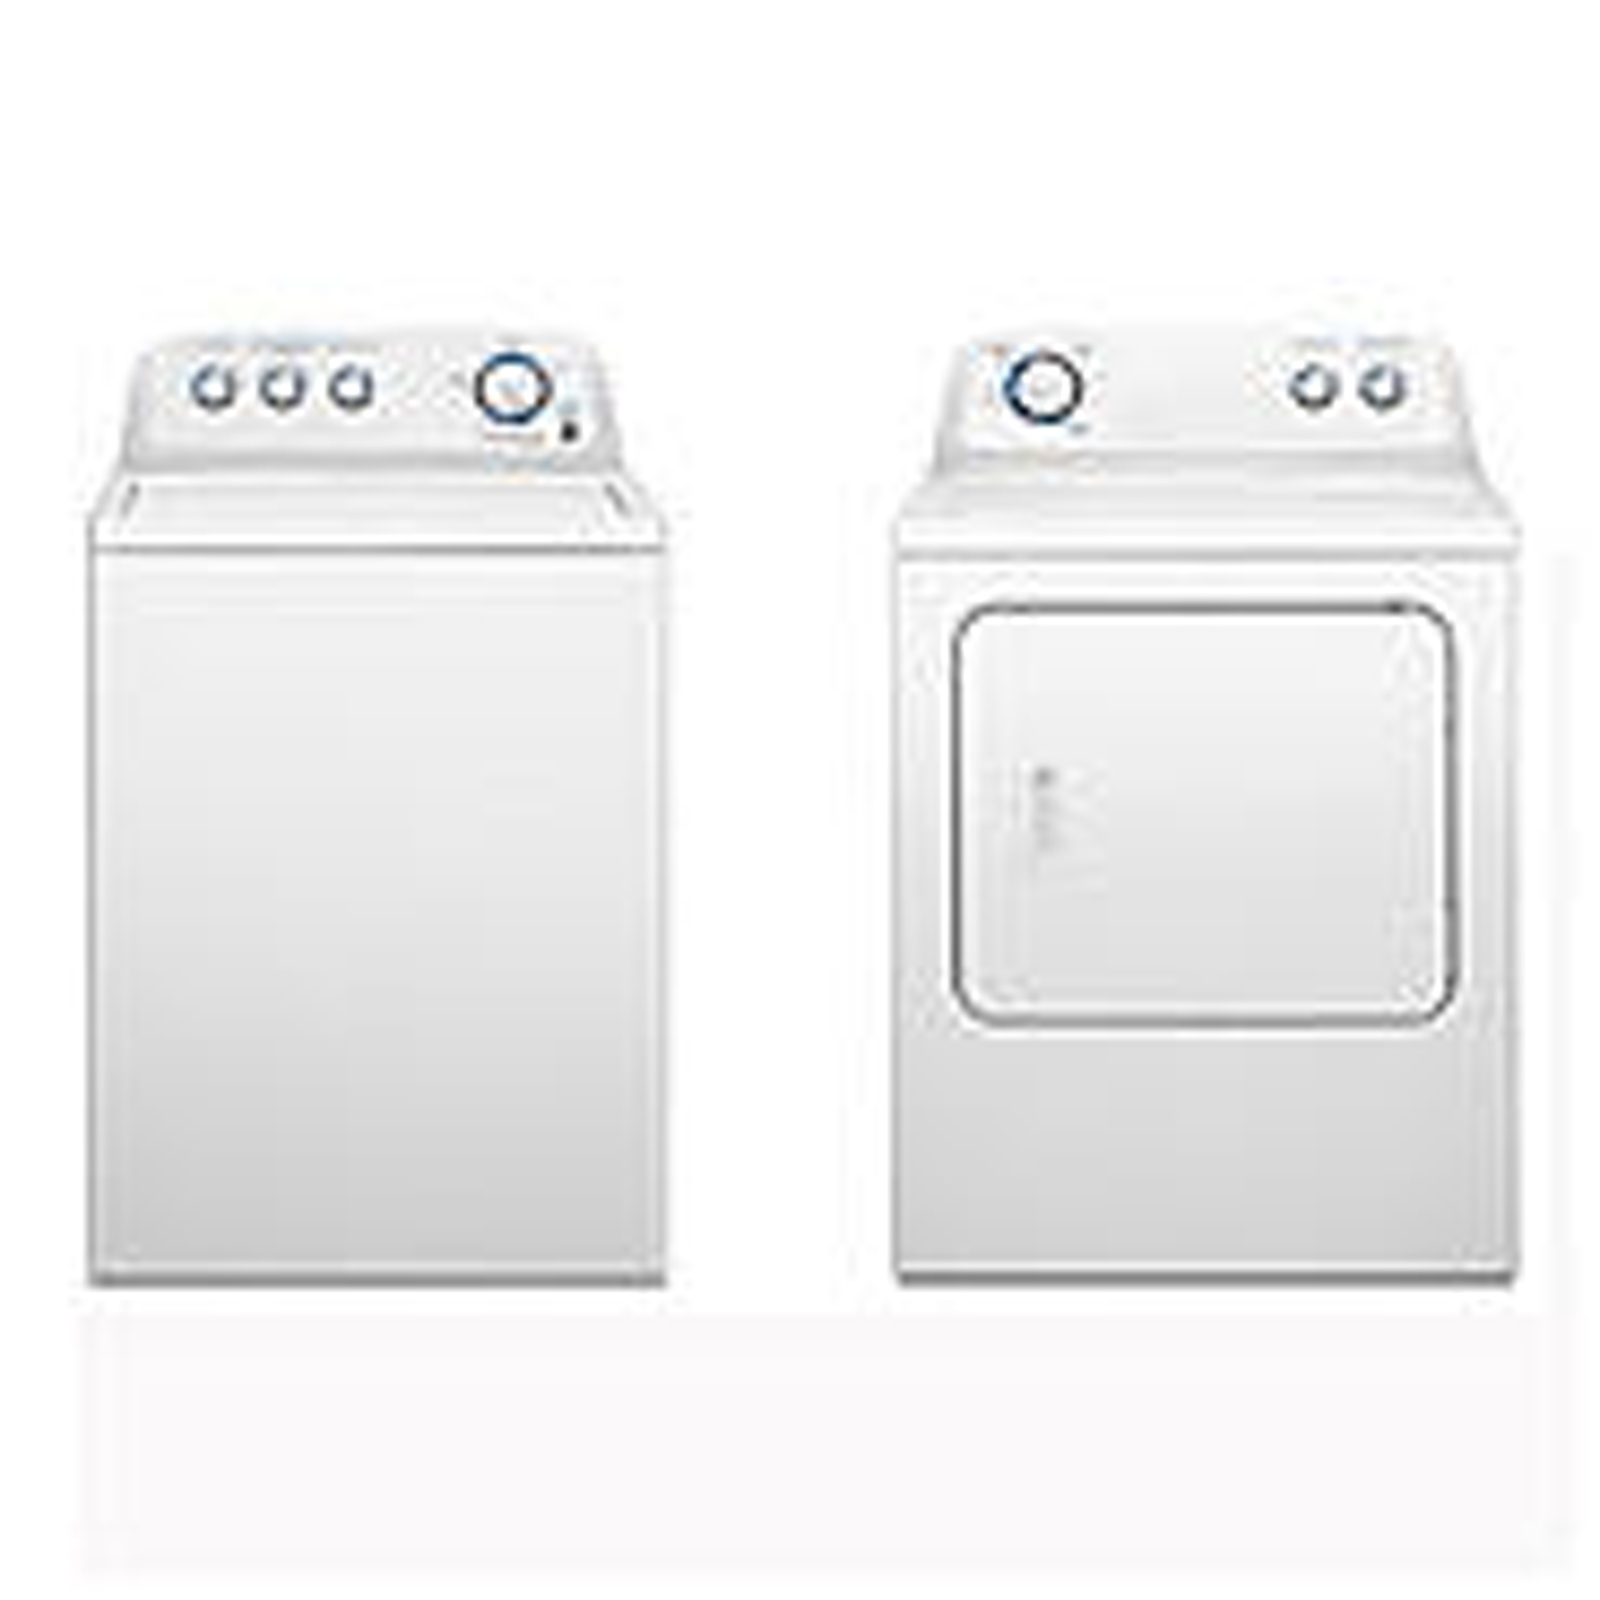 Washer and dryer bundles sears outlet Sears washer and dryer